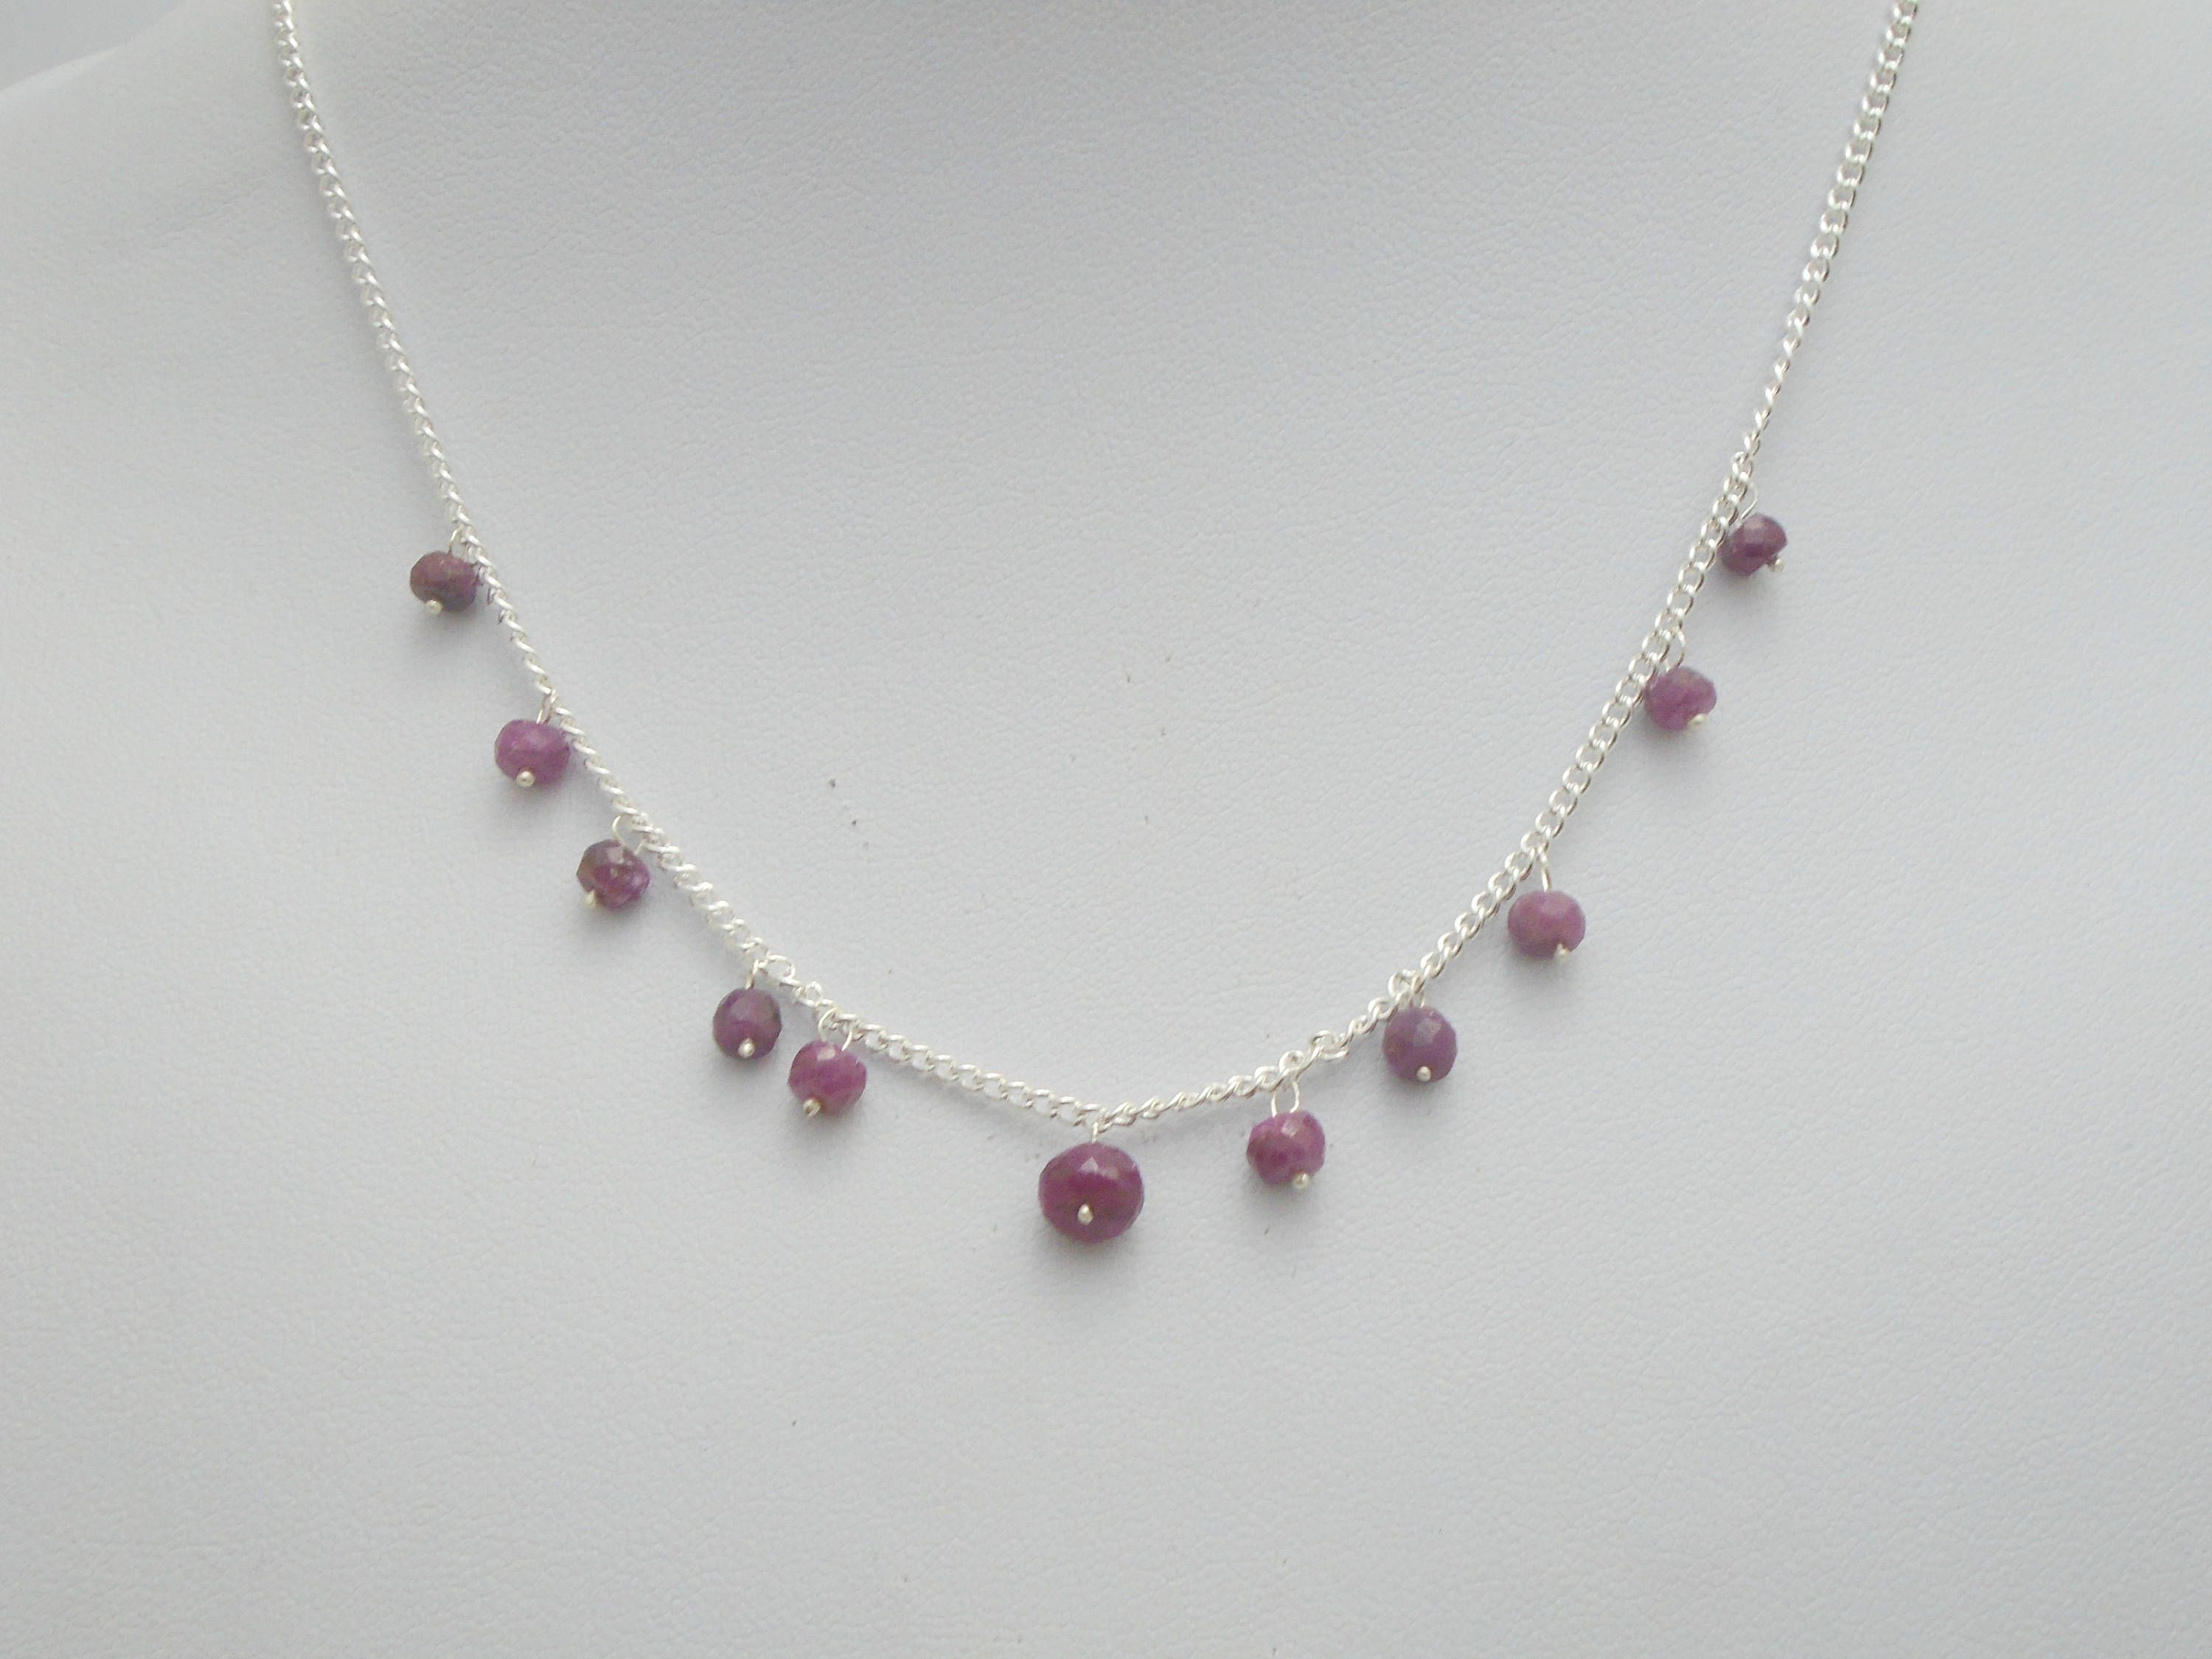 Photo of Floating Ruby necklace, Natural Ruby necklace, Ruby jewelry, red gemstone necklace, July birthstone, sterling silver necklace, gift for her